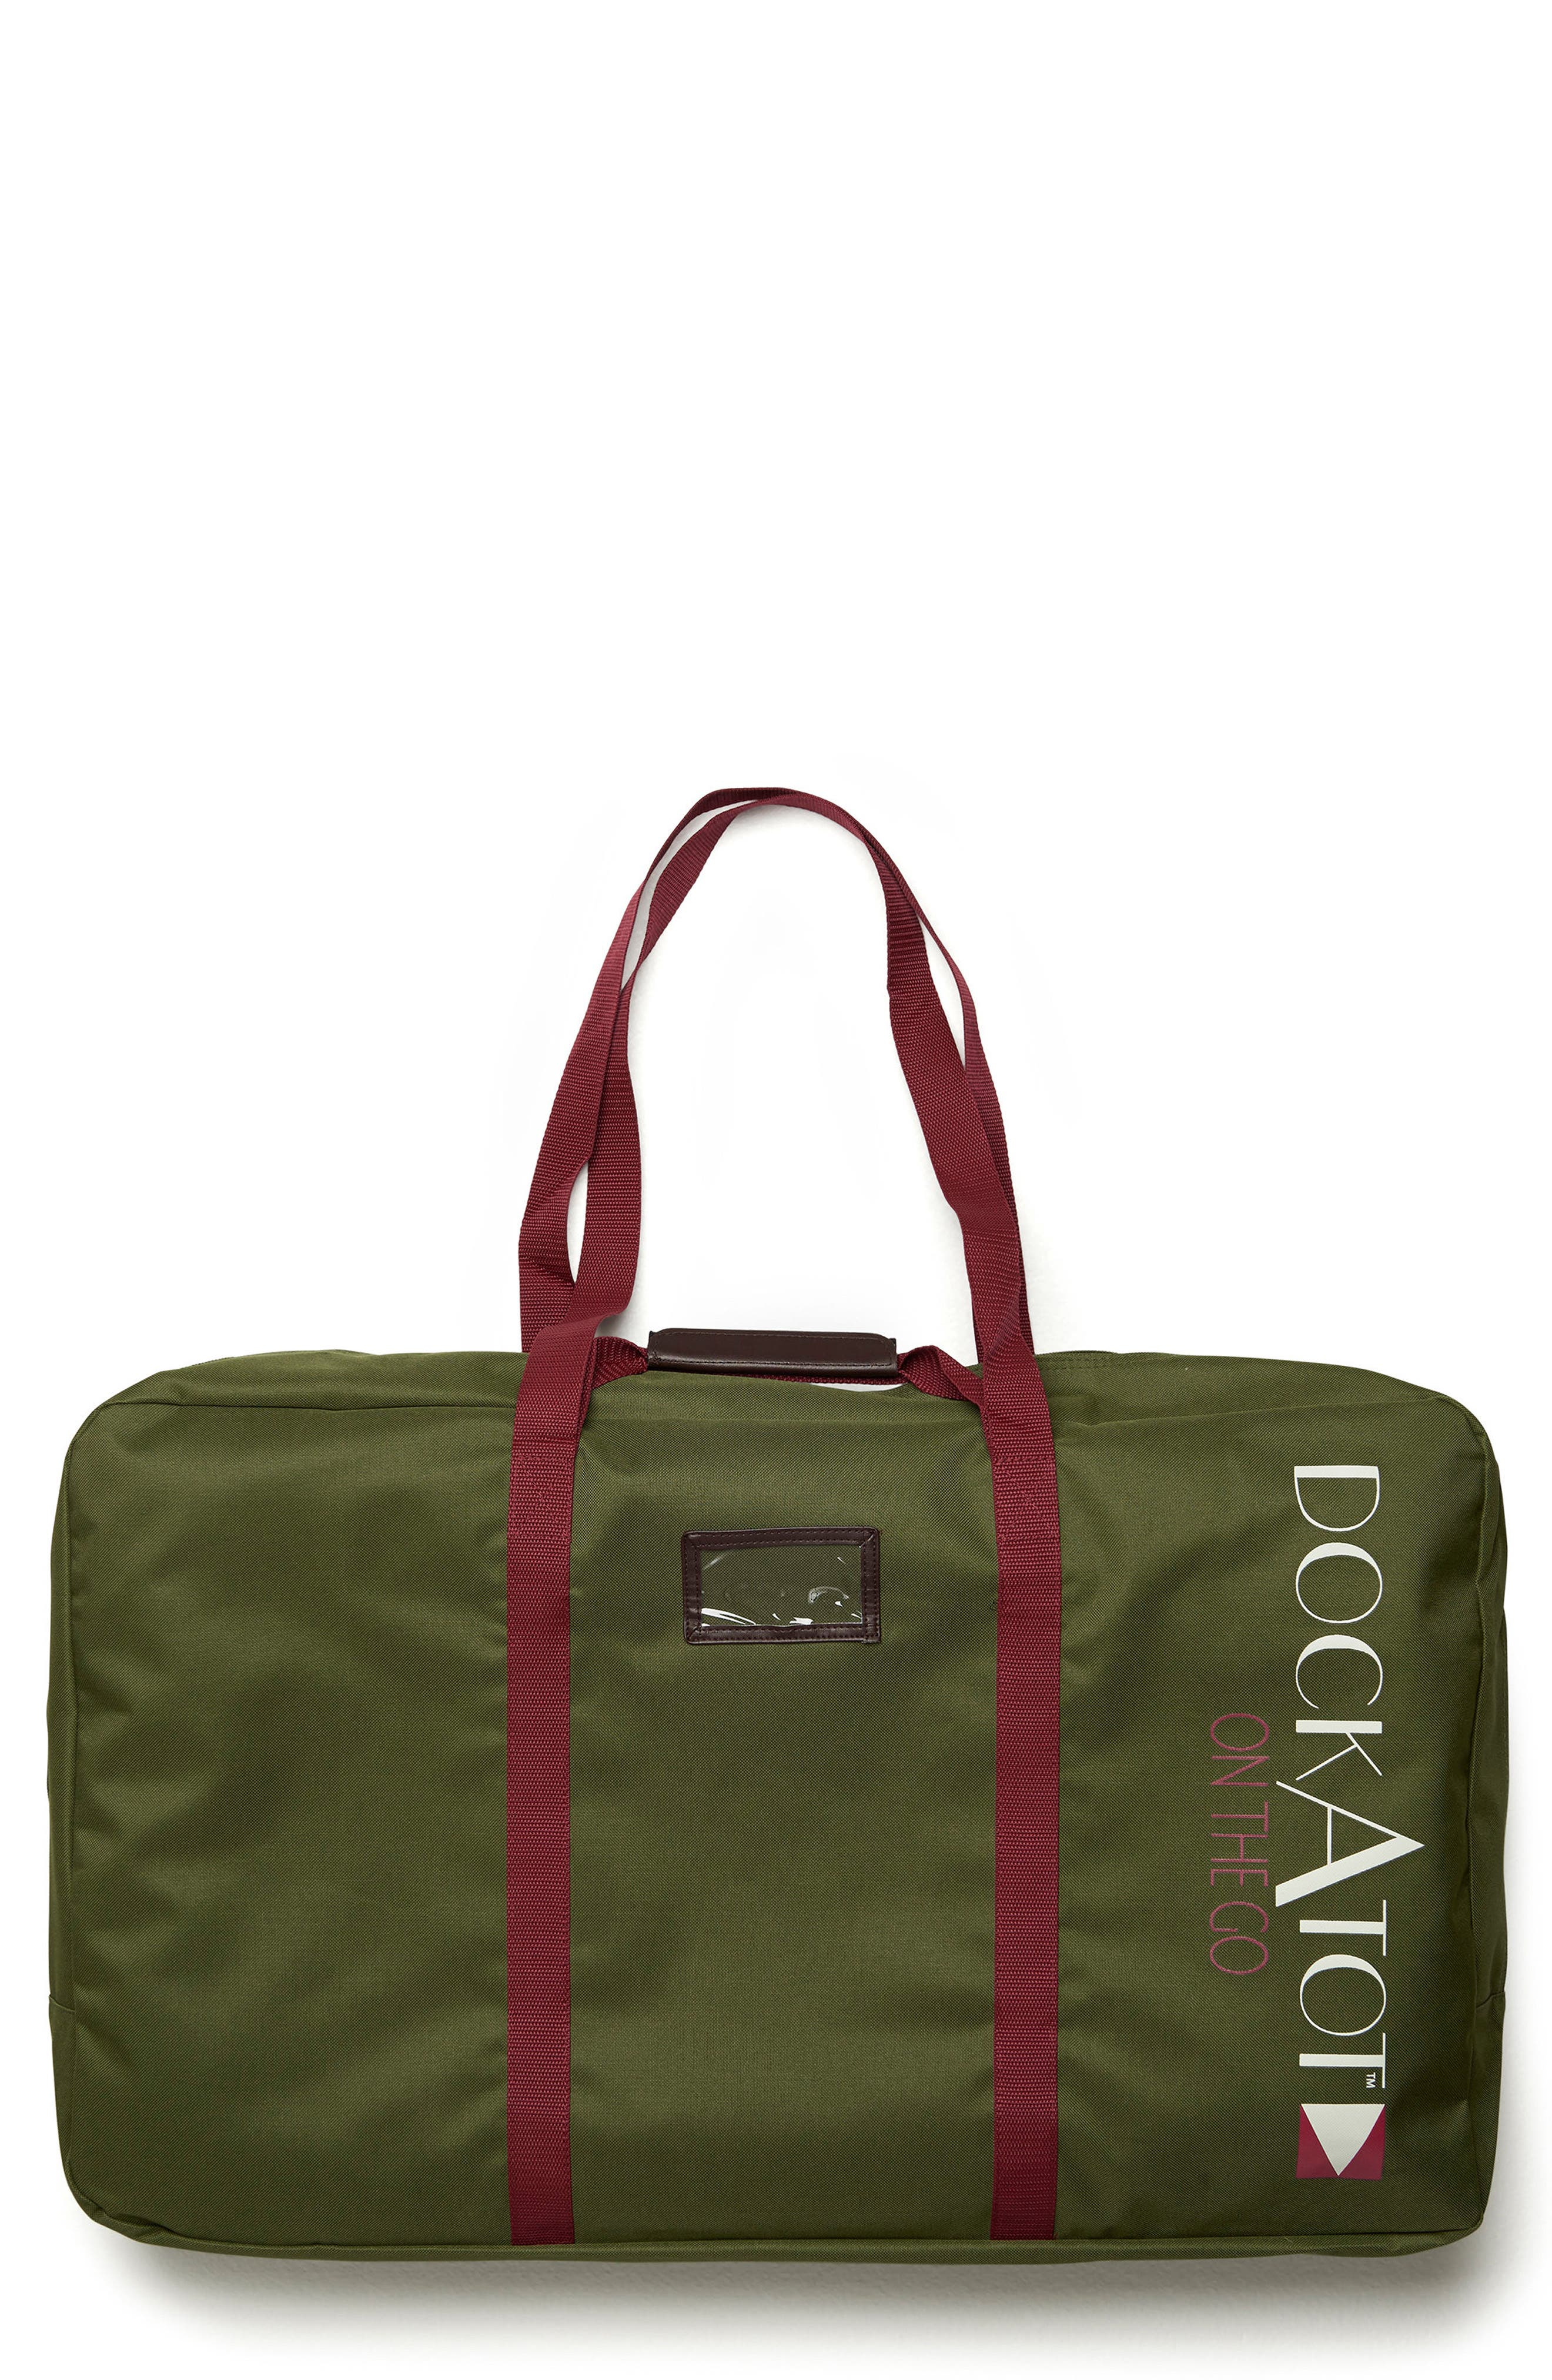 Deluxe Transport Bag,                         Main,                         color, MOSS GREEN